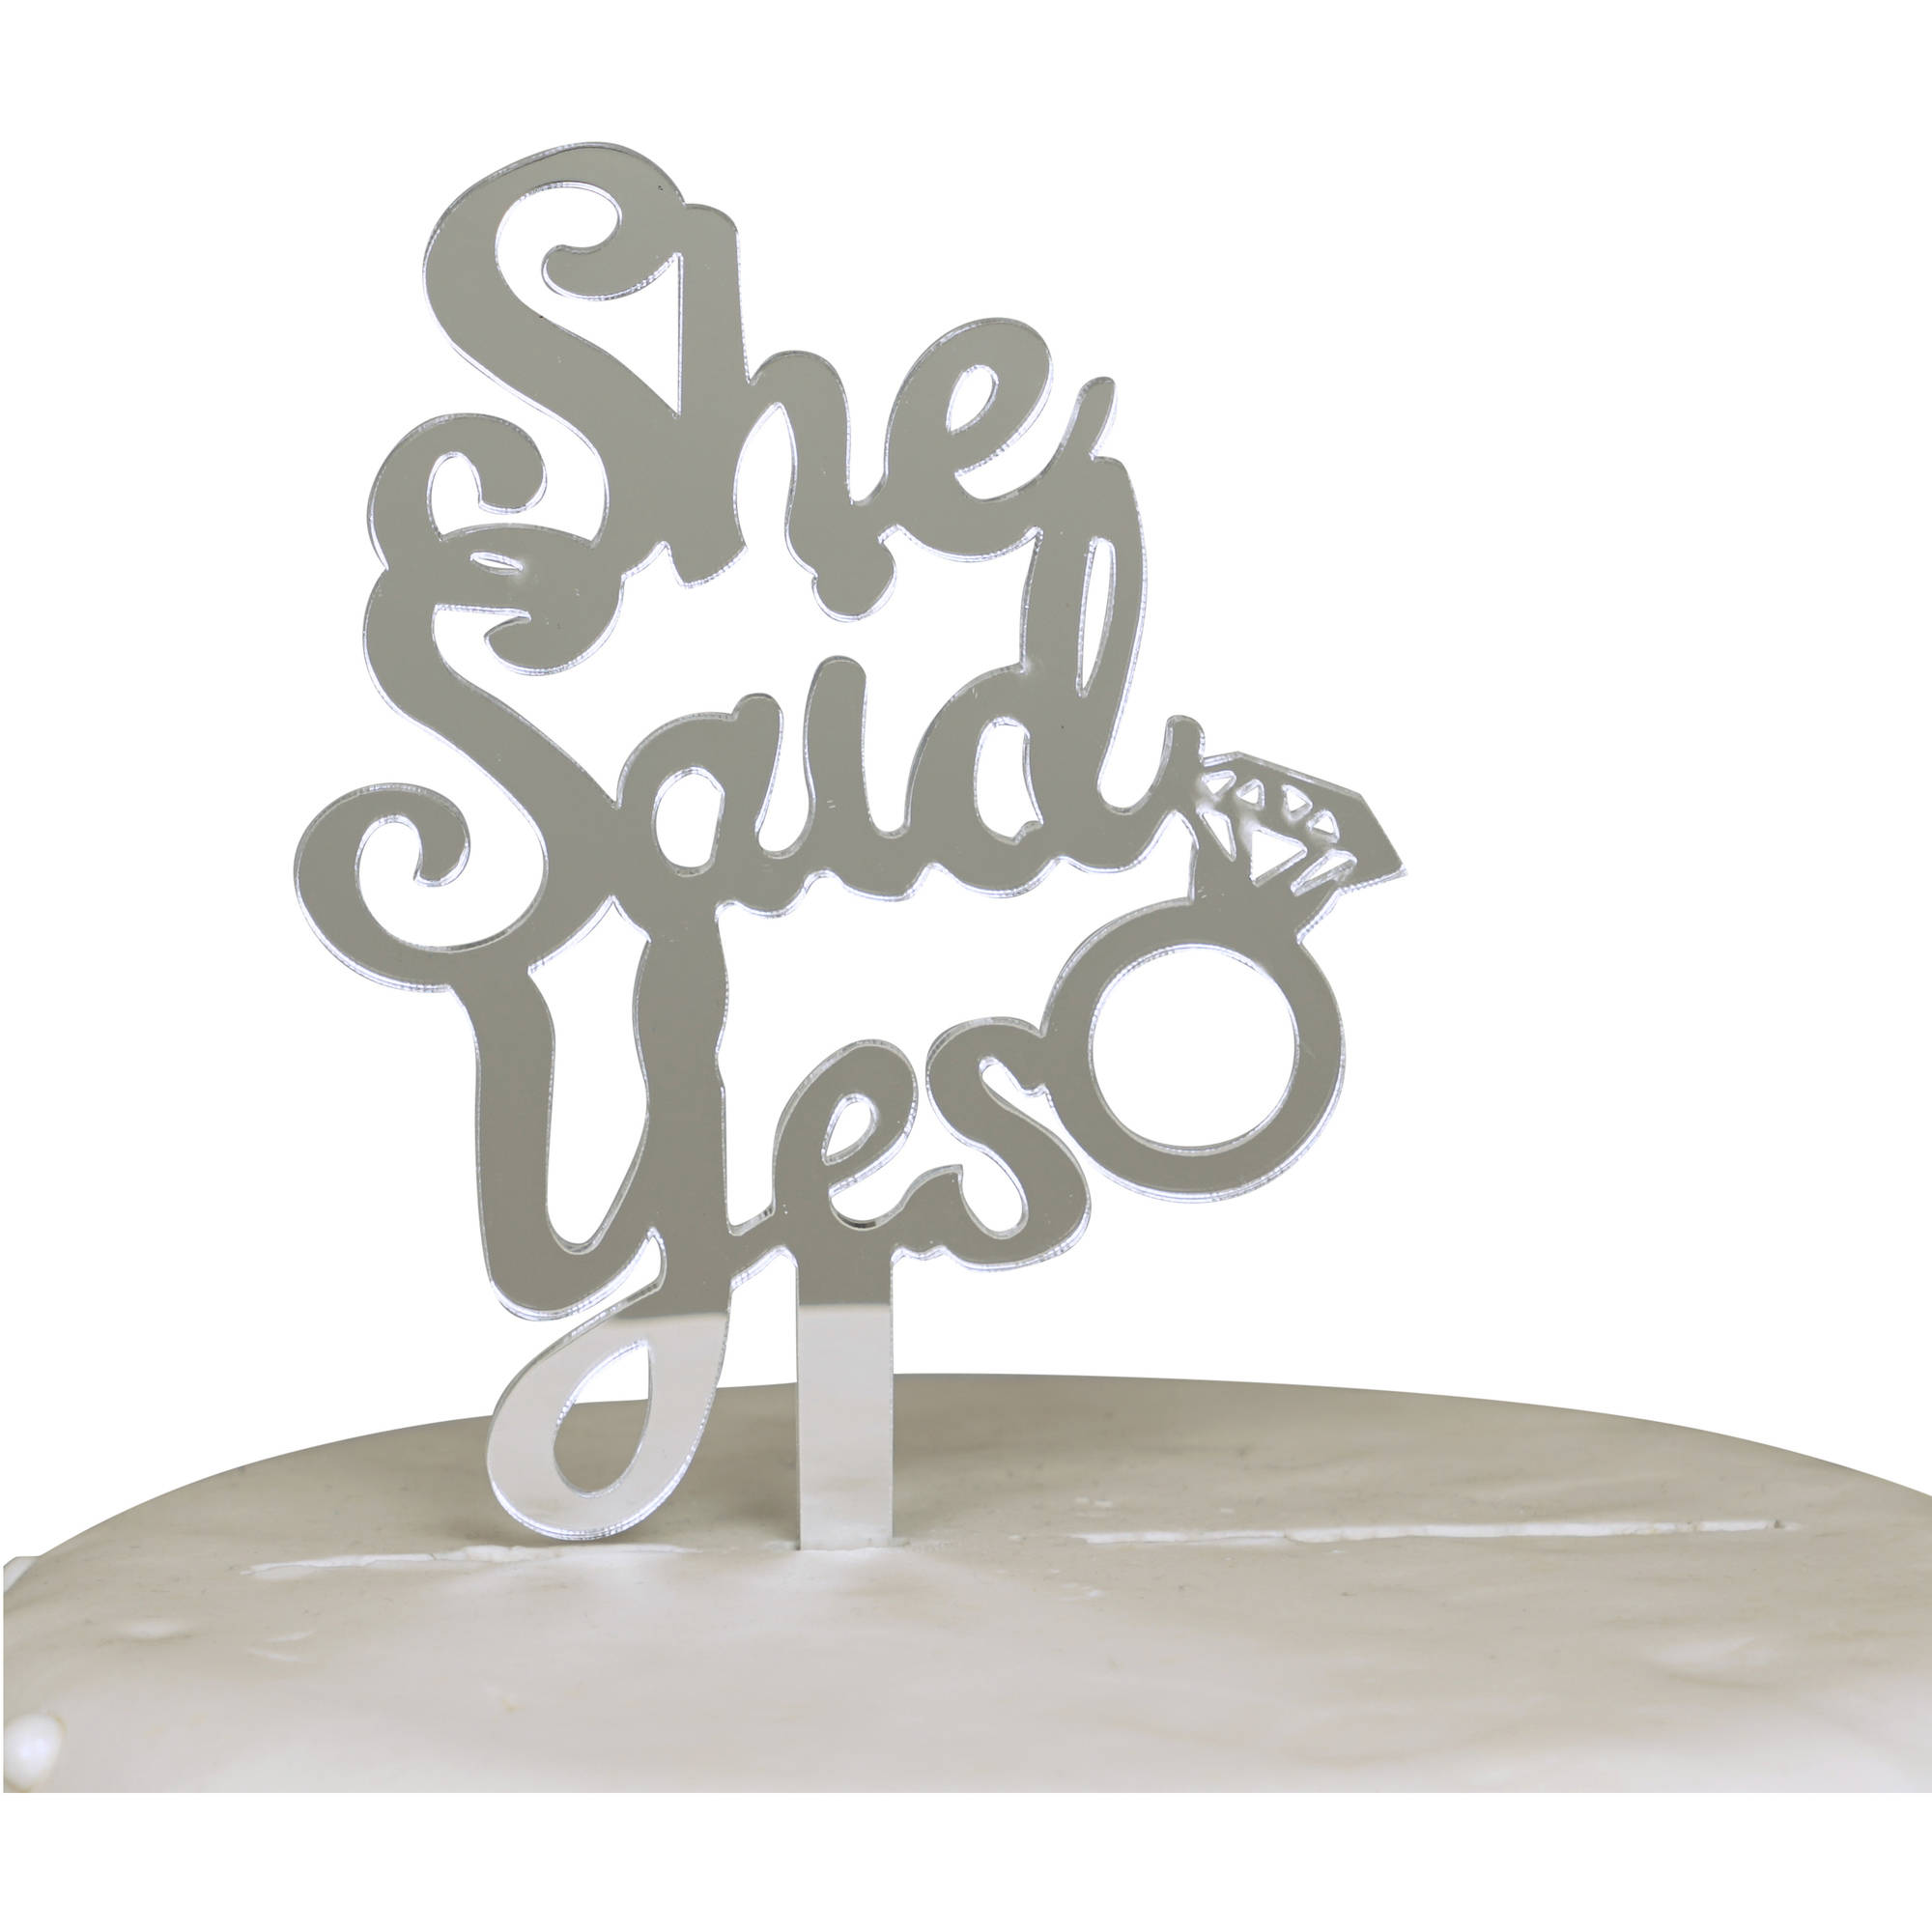 She Said Yes Engagement Acrylic Cake Topper, Silver Mirror